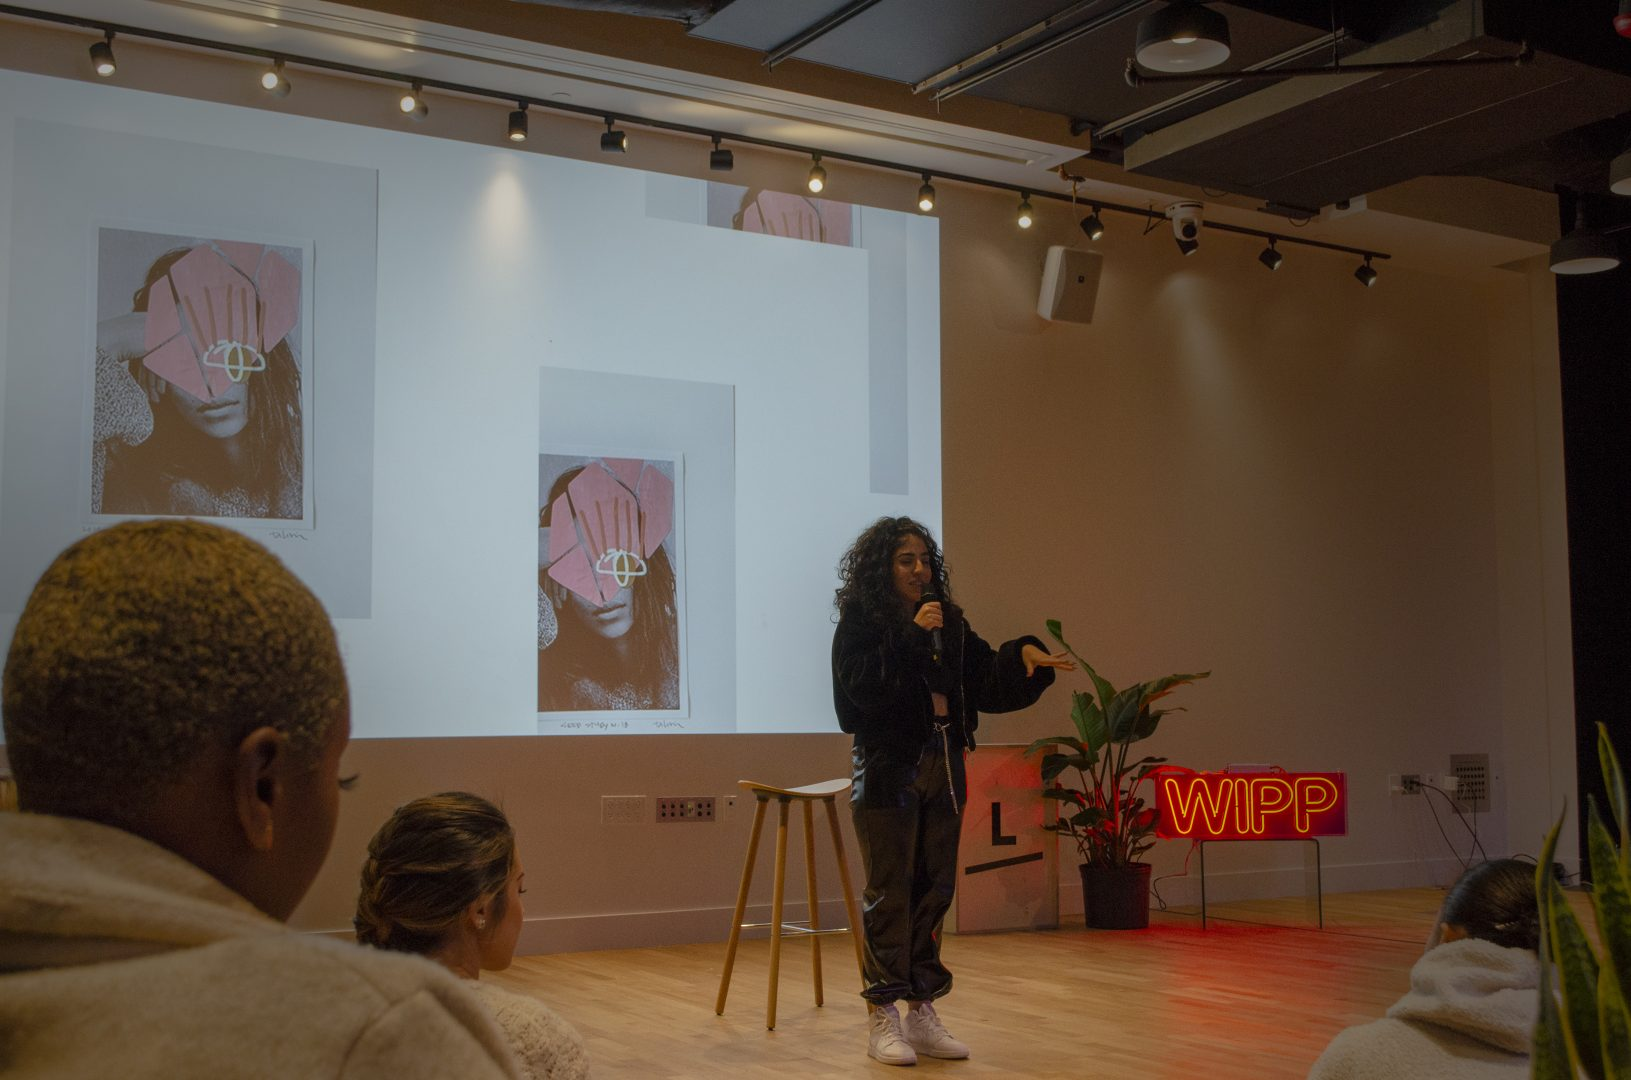 A person is standing at the front of the room with a microphone, mid speech. Behind them is a stool and projected onto the wall behind is some collage art work. The room is dark with the only light coming from the projection and a red neon light casting a red glow onto the floor.